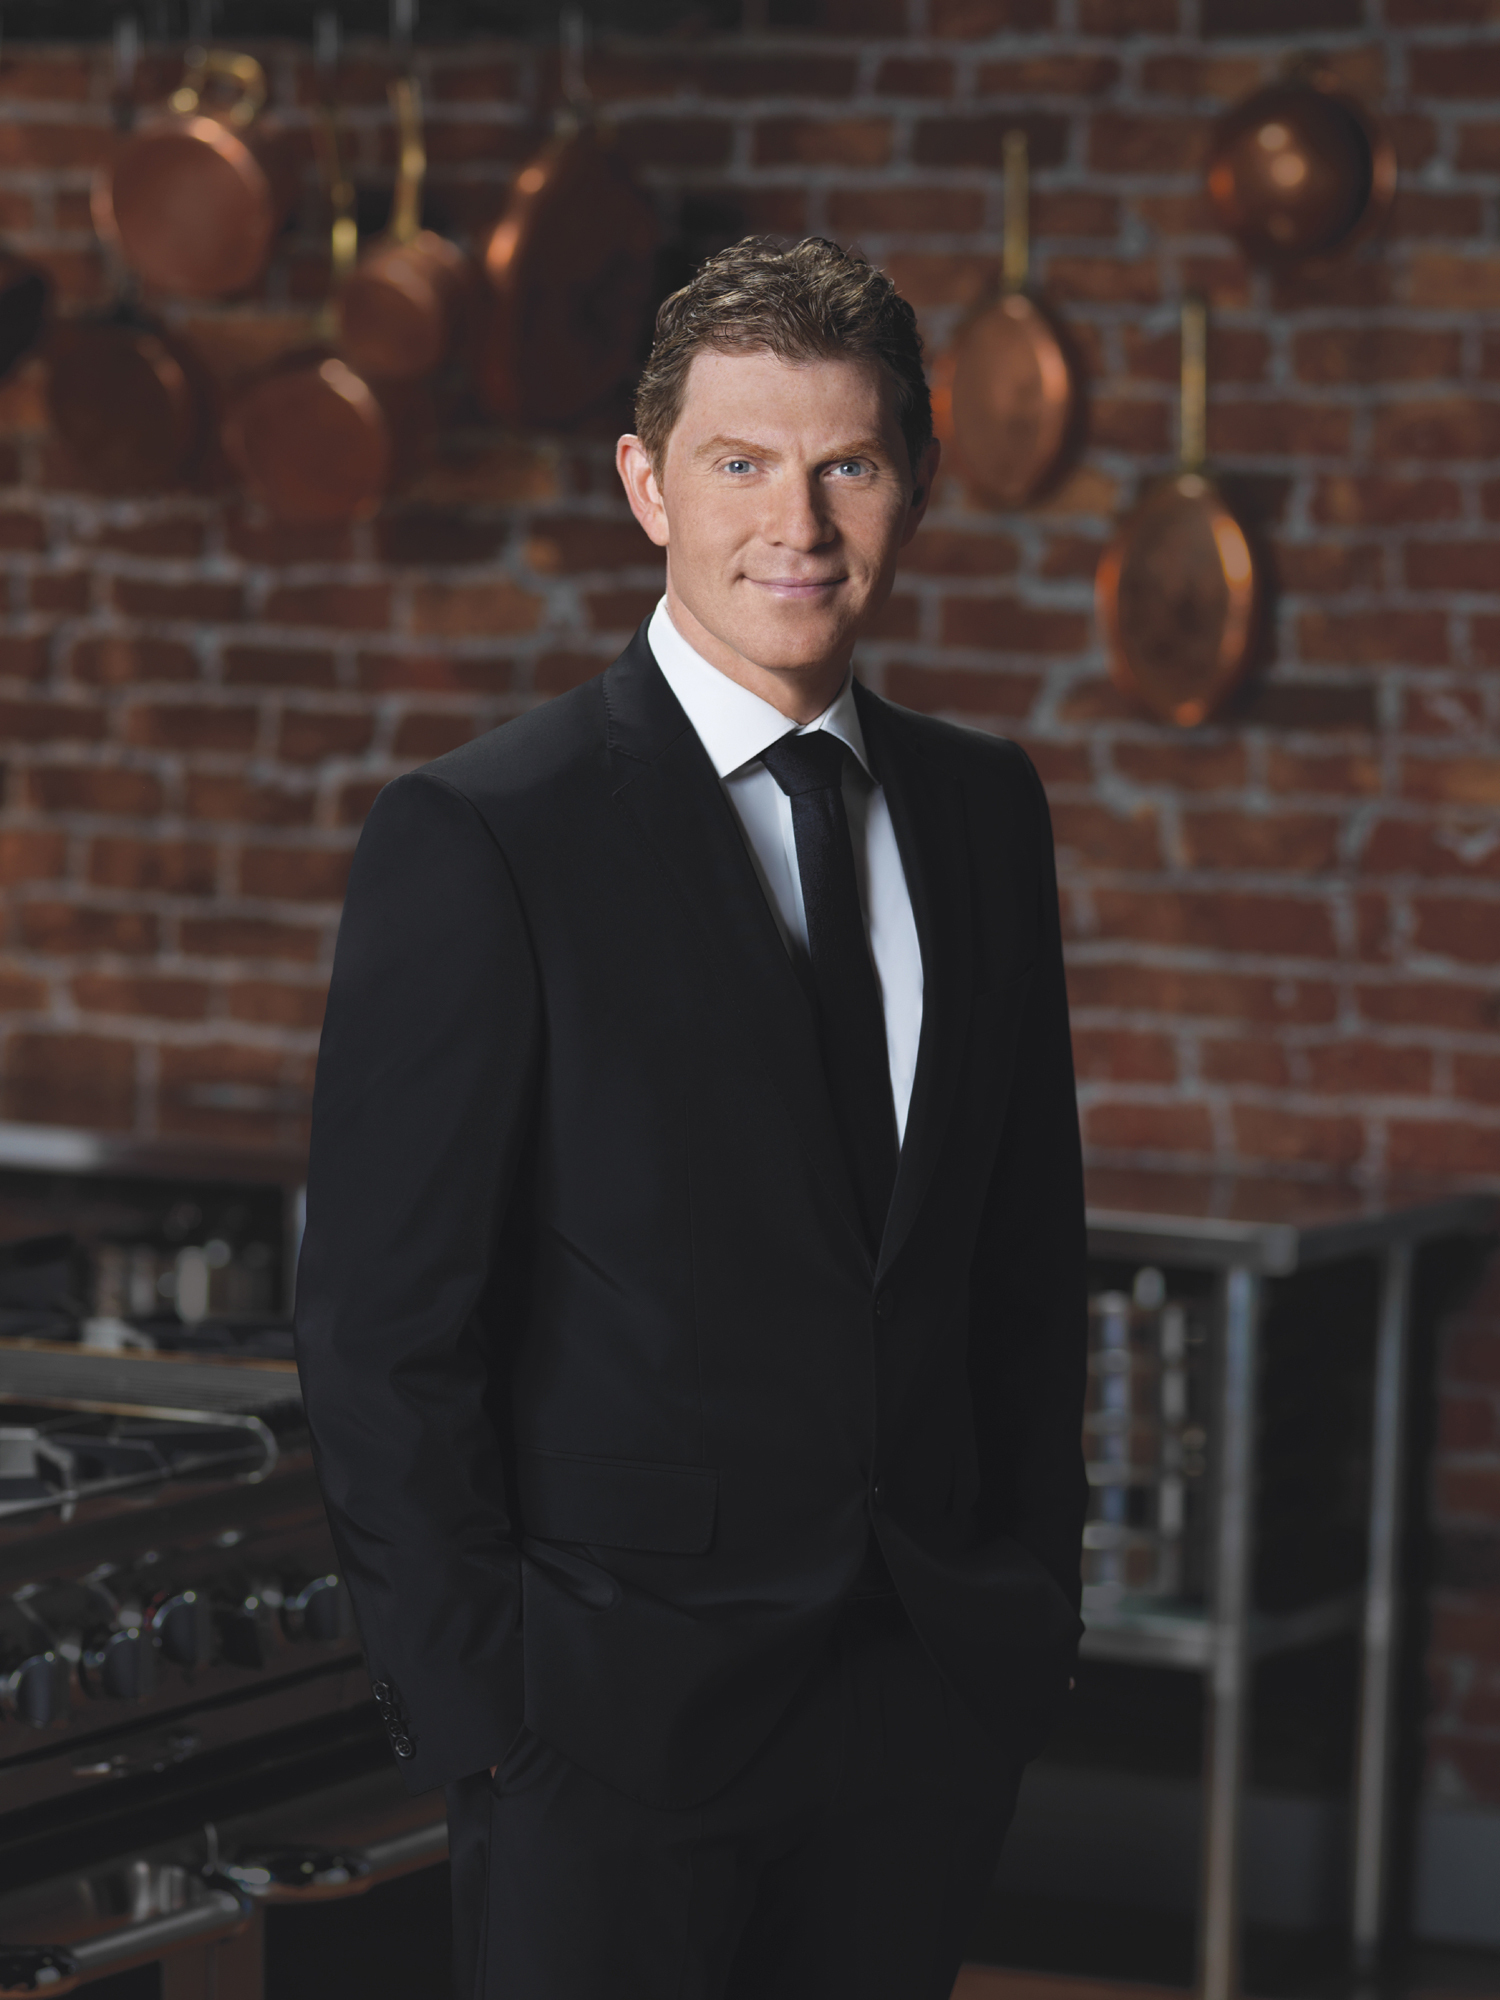 Bobby Flay in The Next Food Network Star (2005)